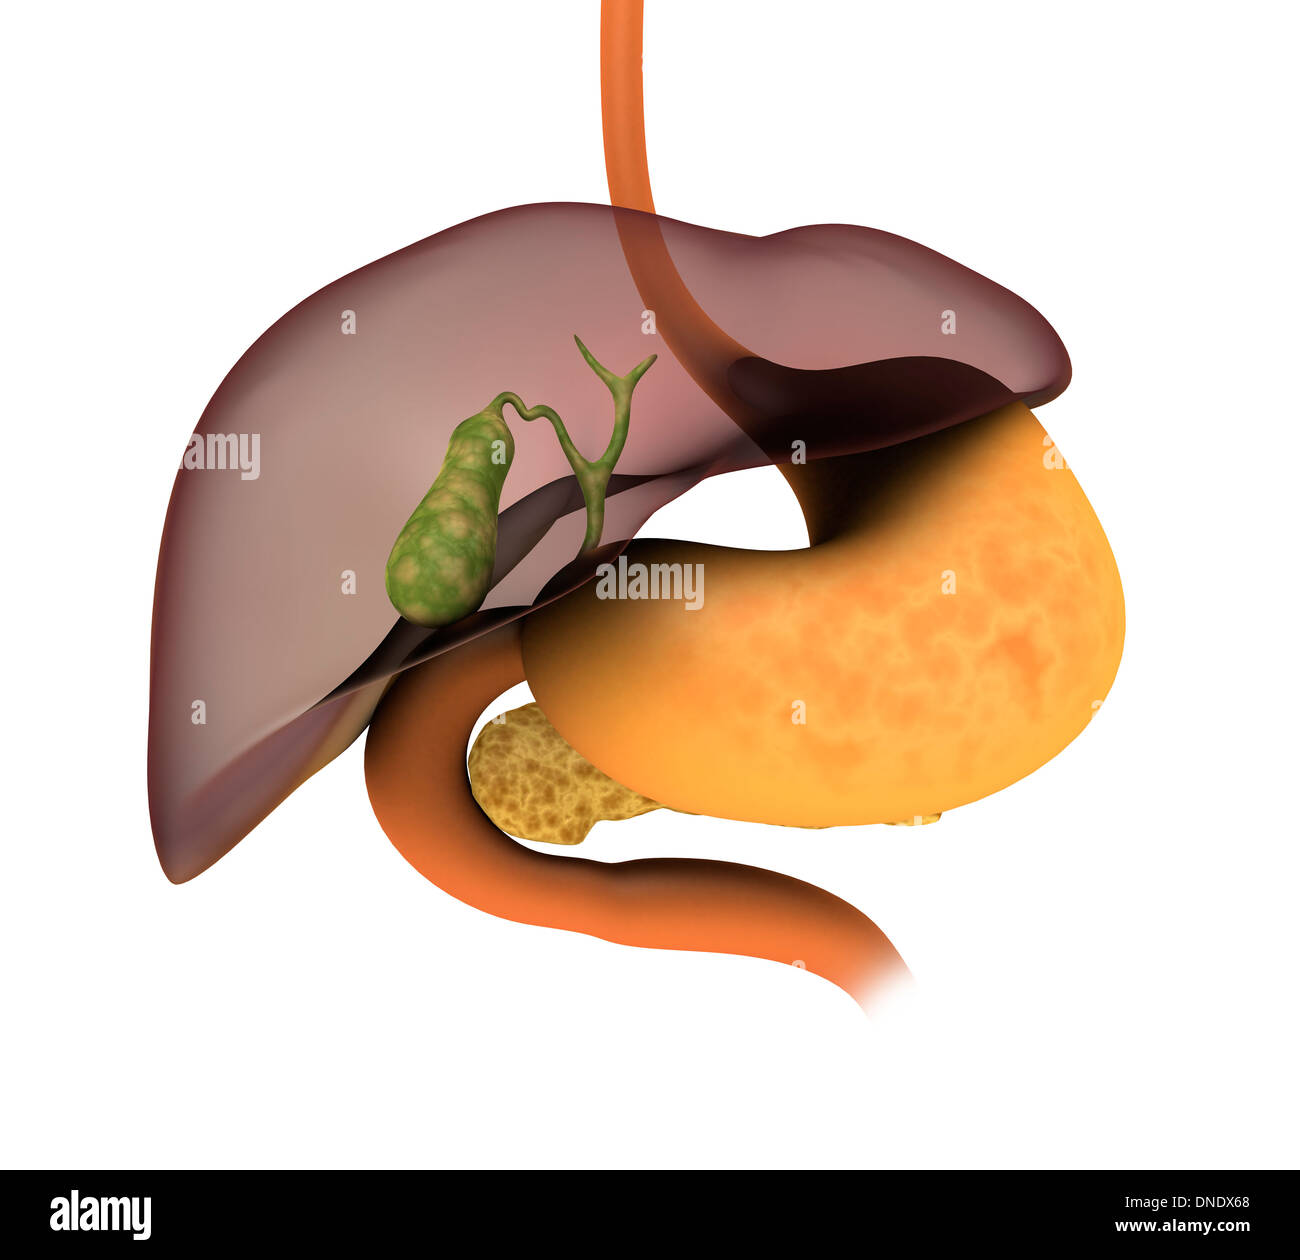 Conceptual Image Of Human Digestive System Showing Gallbladder Stock